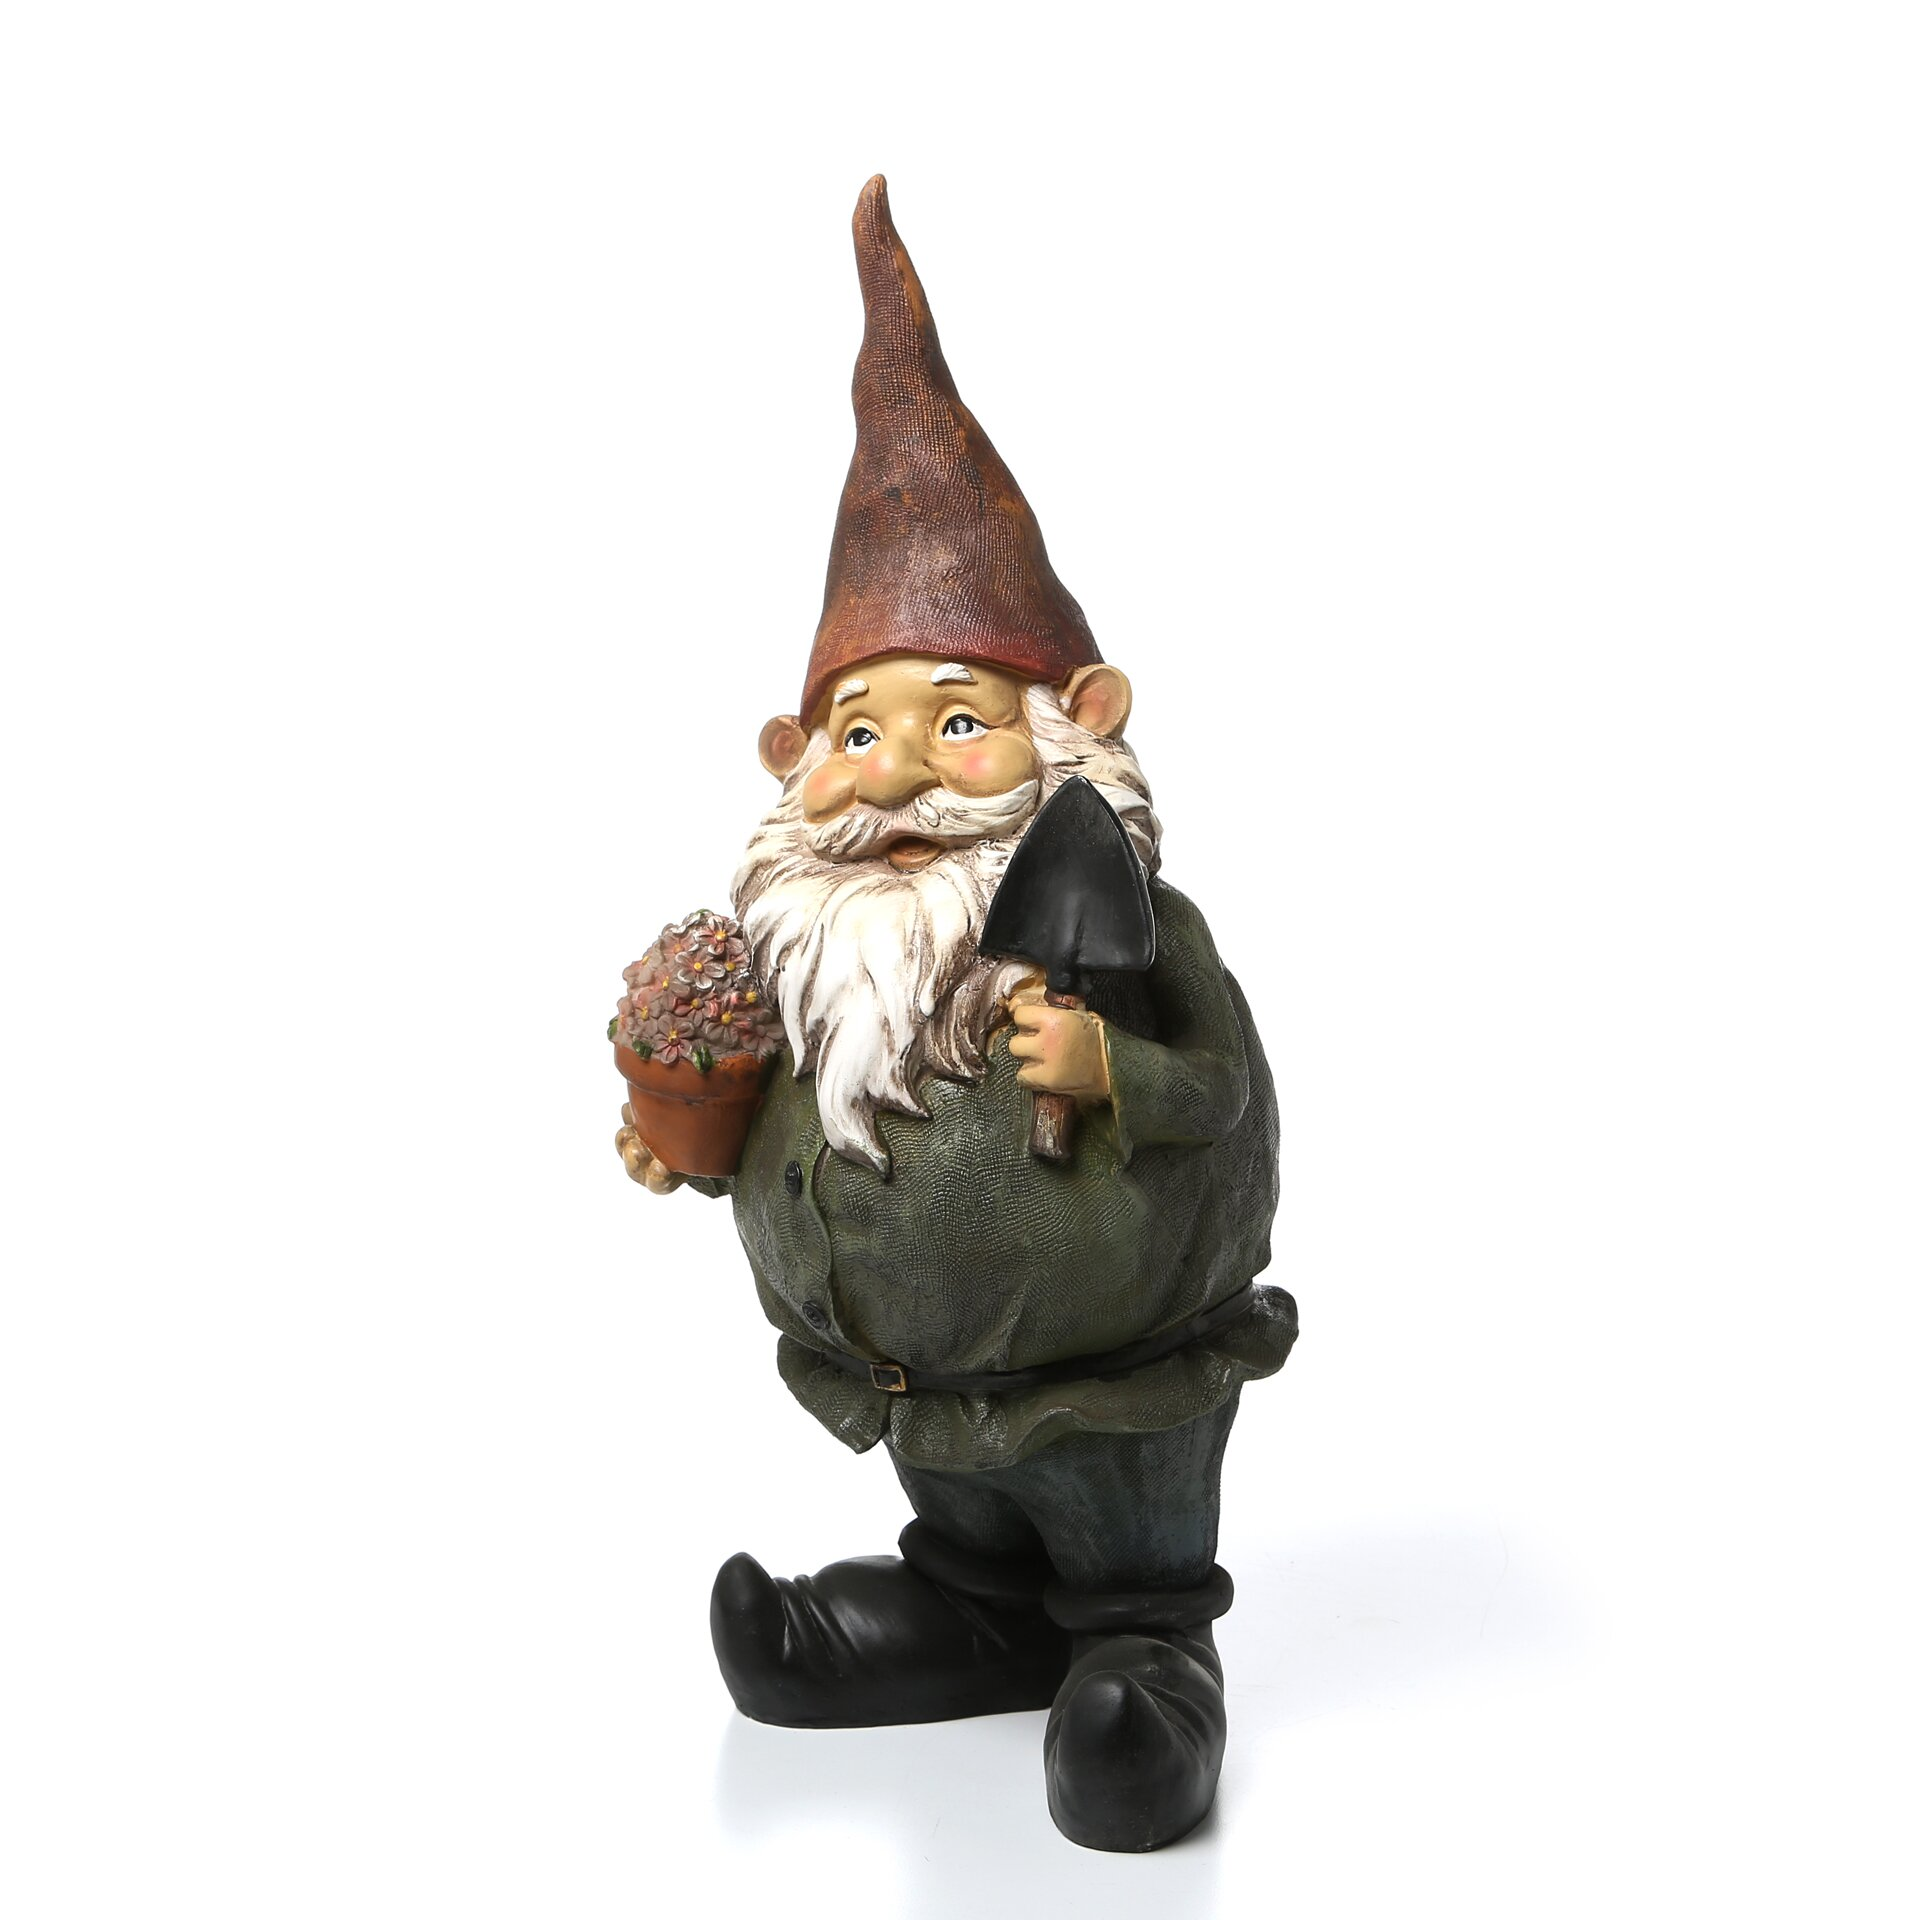 Design Toscano Dagobert with Gifts Garden Gnome Statue Reviews